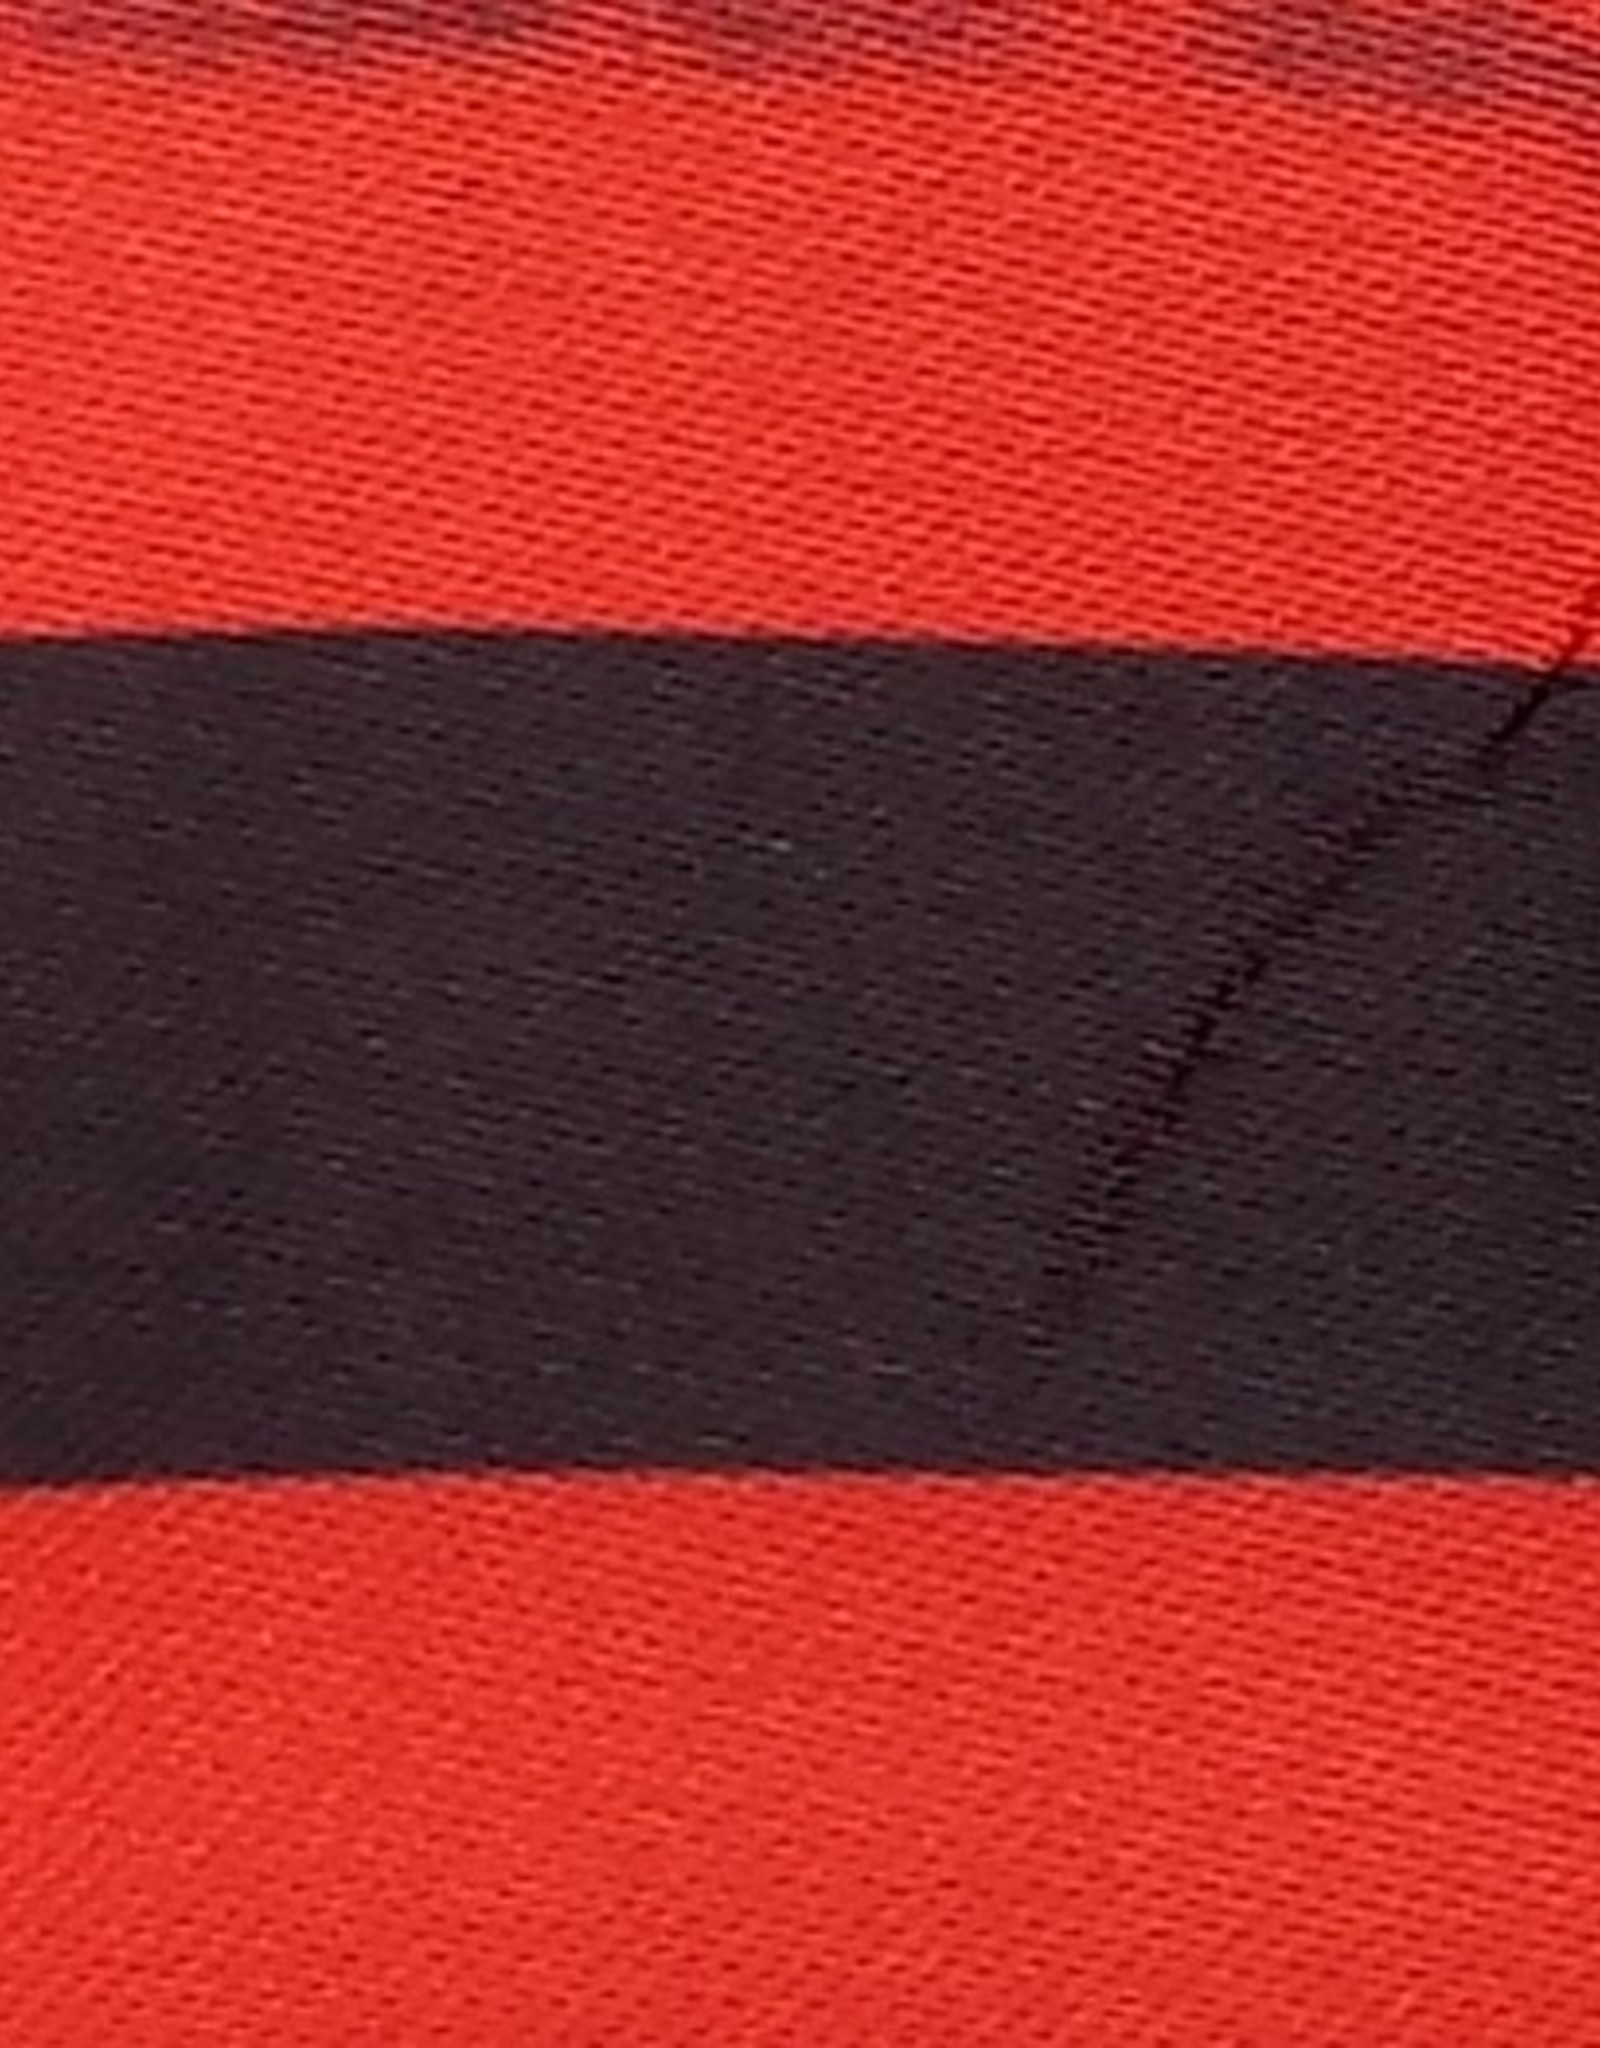 Satin Polyester 58 - 60 Inches Striped - Red & Black